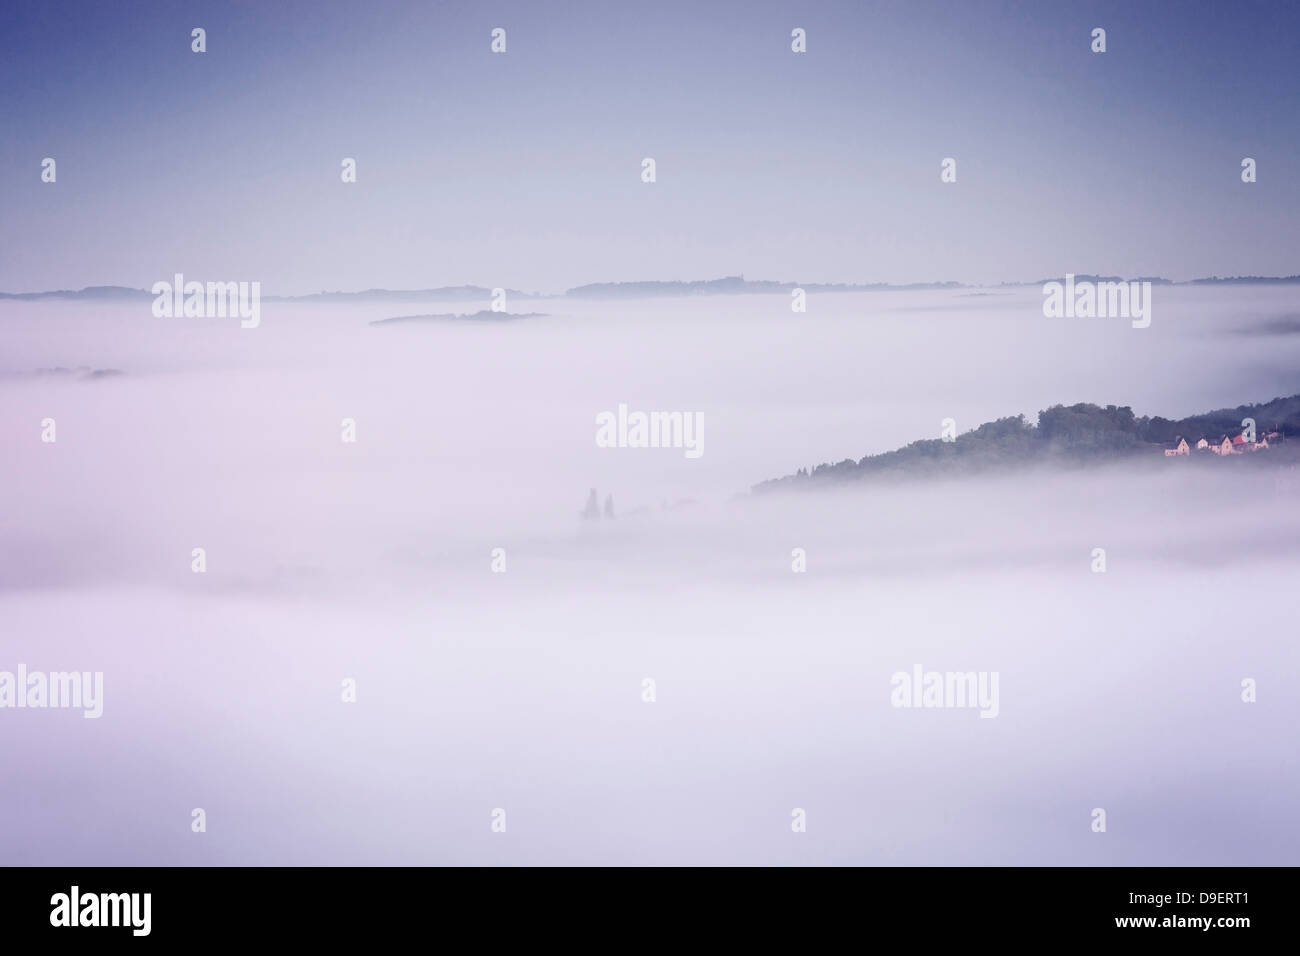 Domme Aquitaine France Early Morning Cloud Cover - the medieval bastide of Domme, covered by early morning mist - Stock Image